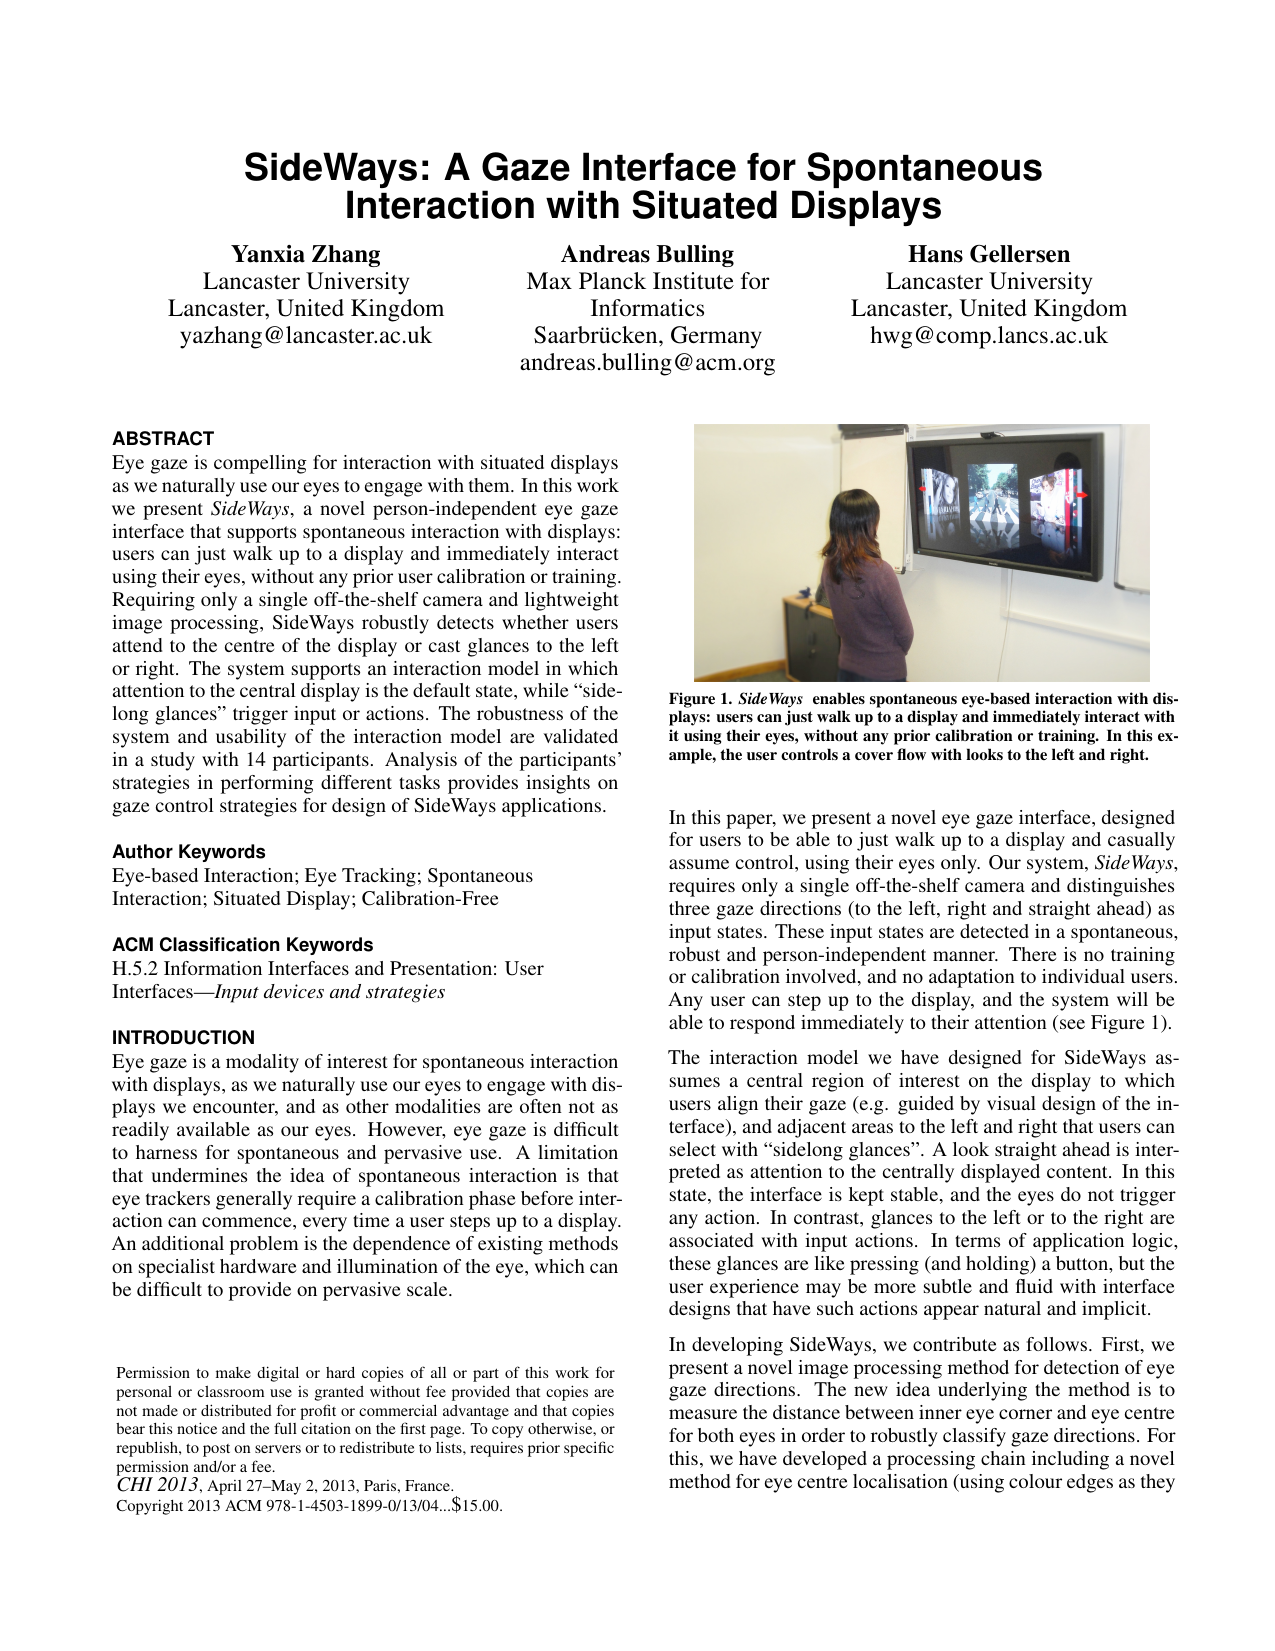 SideWays: A Gaze Interface for Spontaneous Interaction with Situated Displays